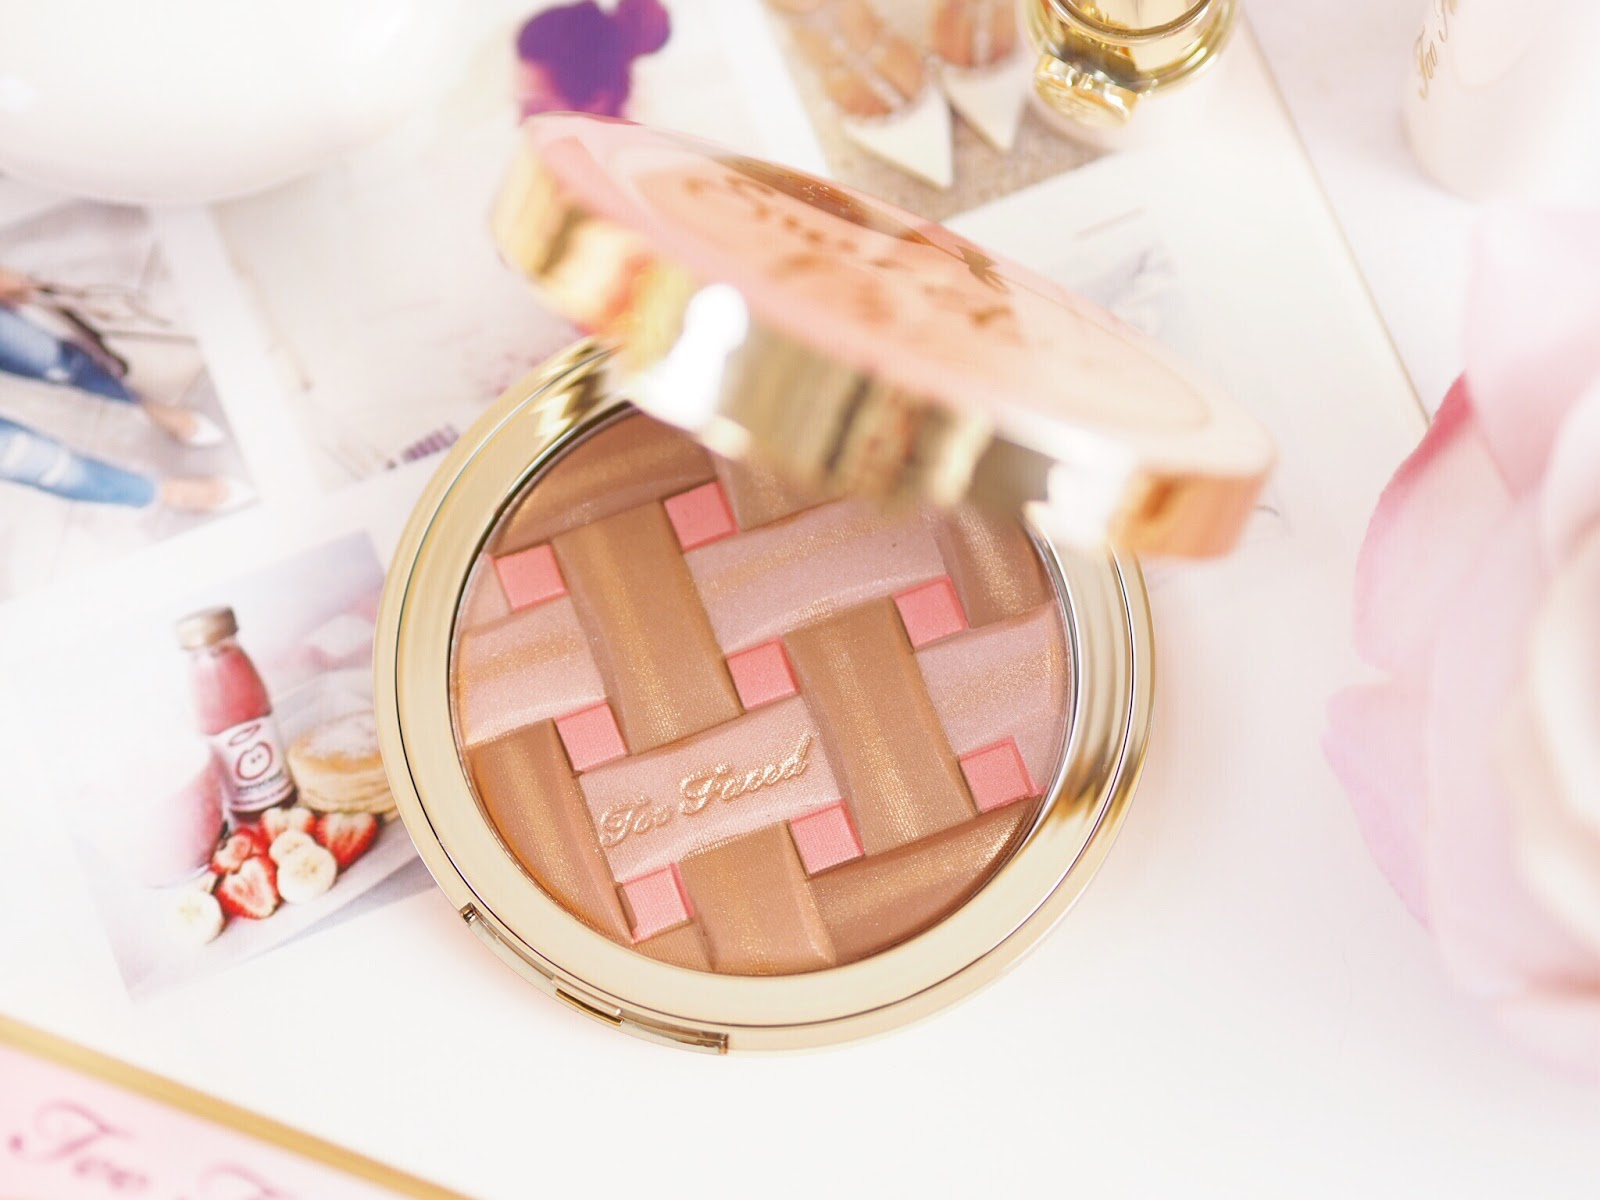 Too Faced, Sweetie Pie Bronzer, Too Faced review, highlighter review, blusher review, palette review, make-up review, make up review